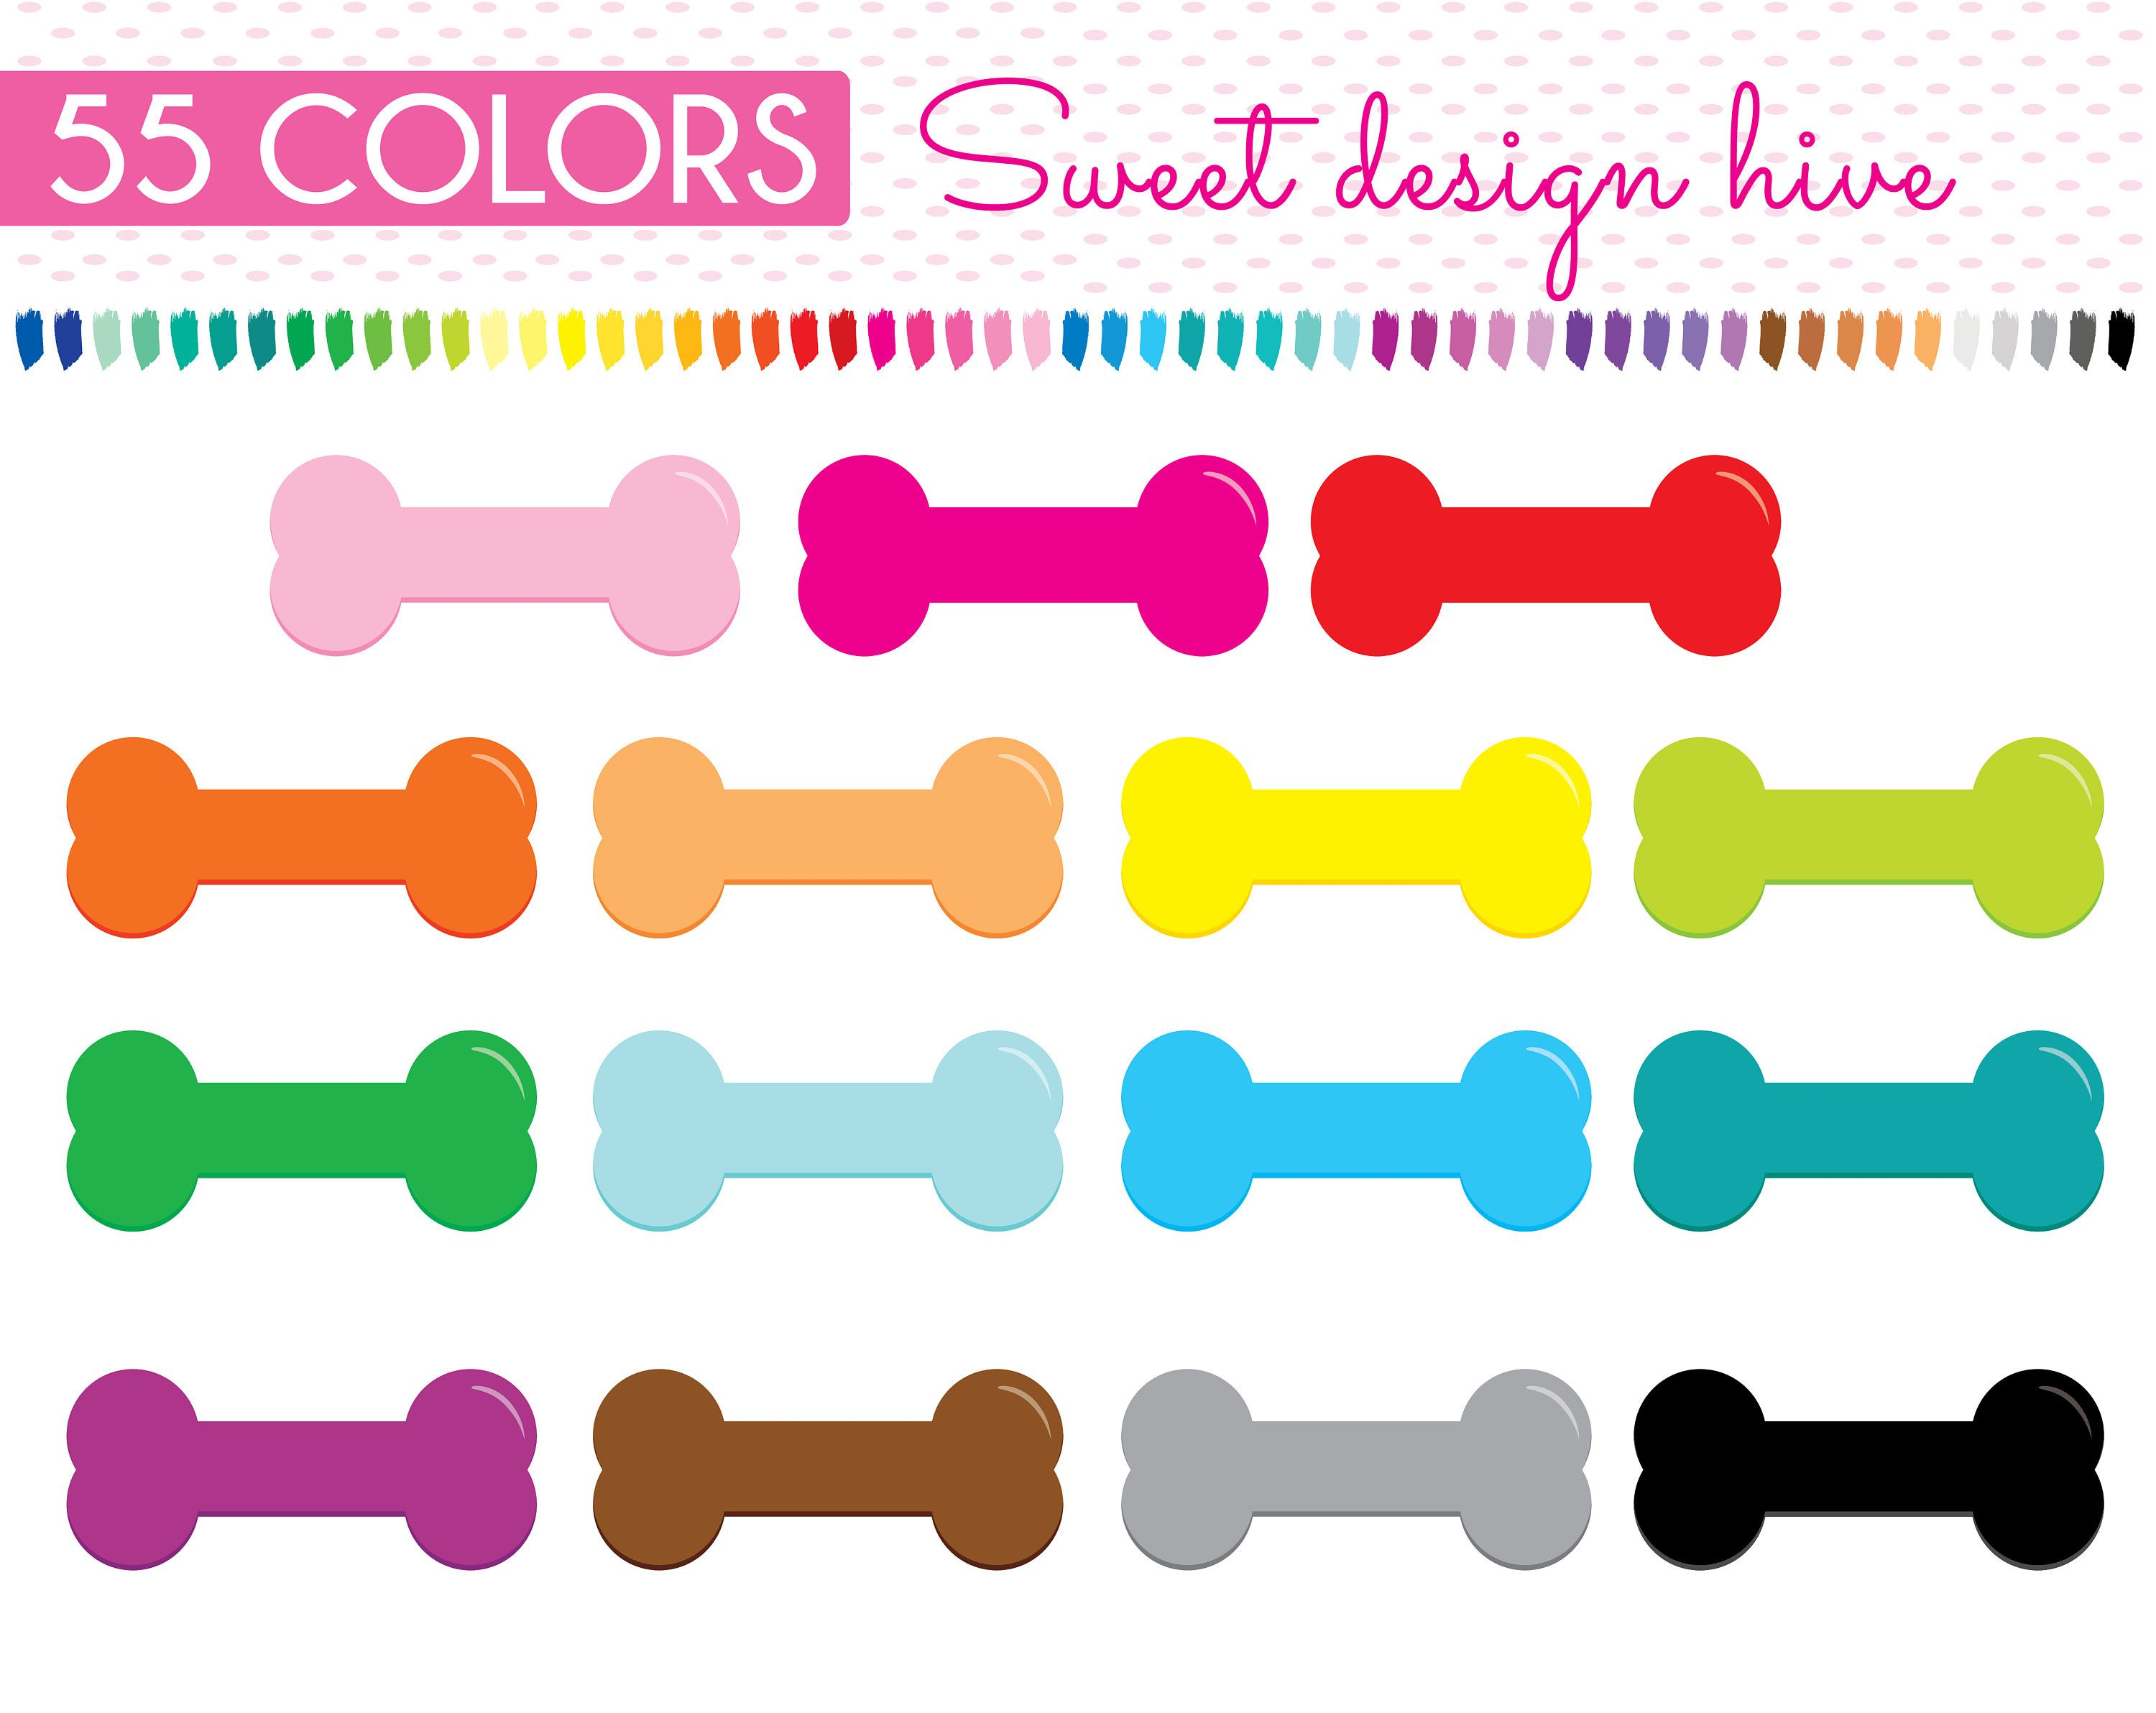 dog bone clipart dog food puppy toy pet rainbow planner stickers graphics sticker clipart planner clipart commercial use pl0087 by sweetdesignhive  [ 3000 x 2384 Pixel ]